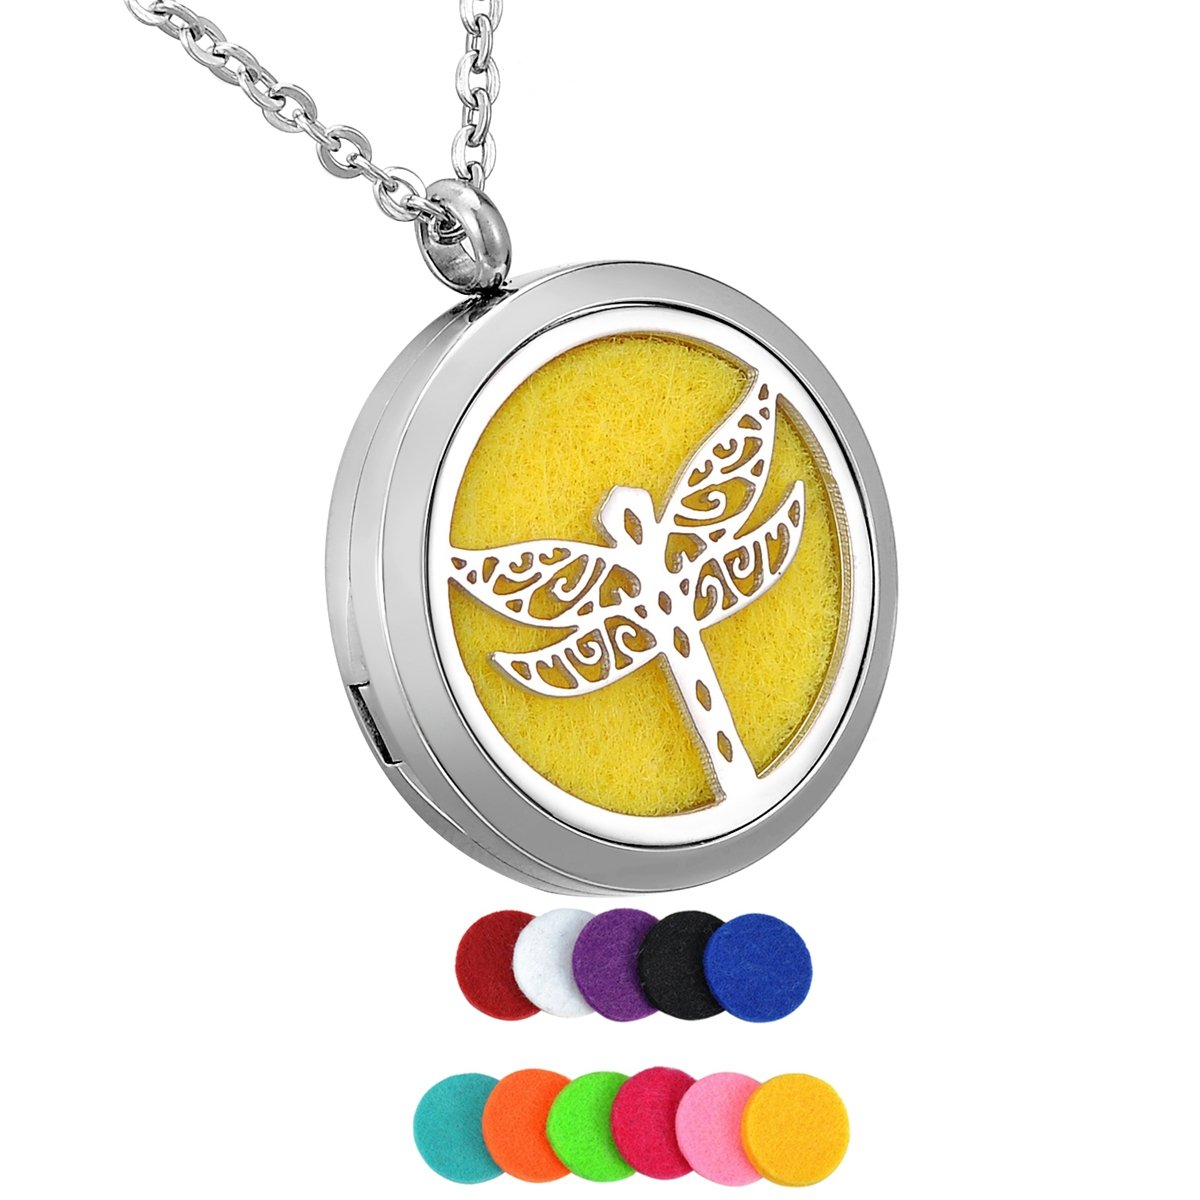 HooAMI Aromatherapy Essential Oil Diffuser Necklace - Stainless Steel Locket Pendant TY BETY111416